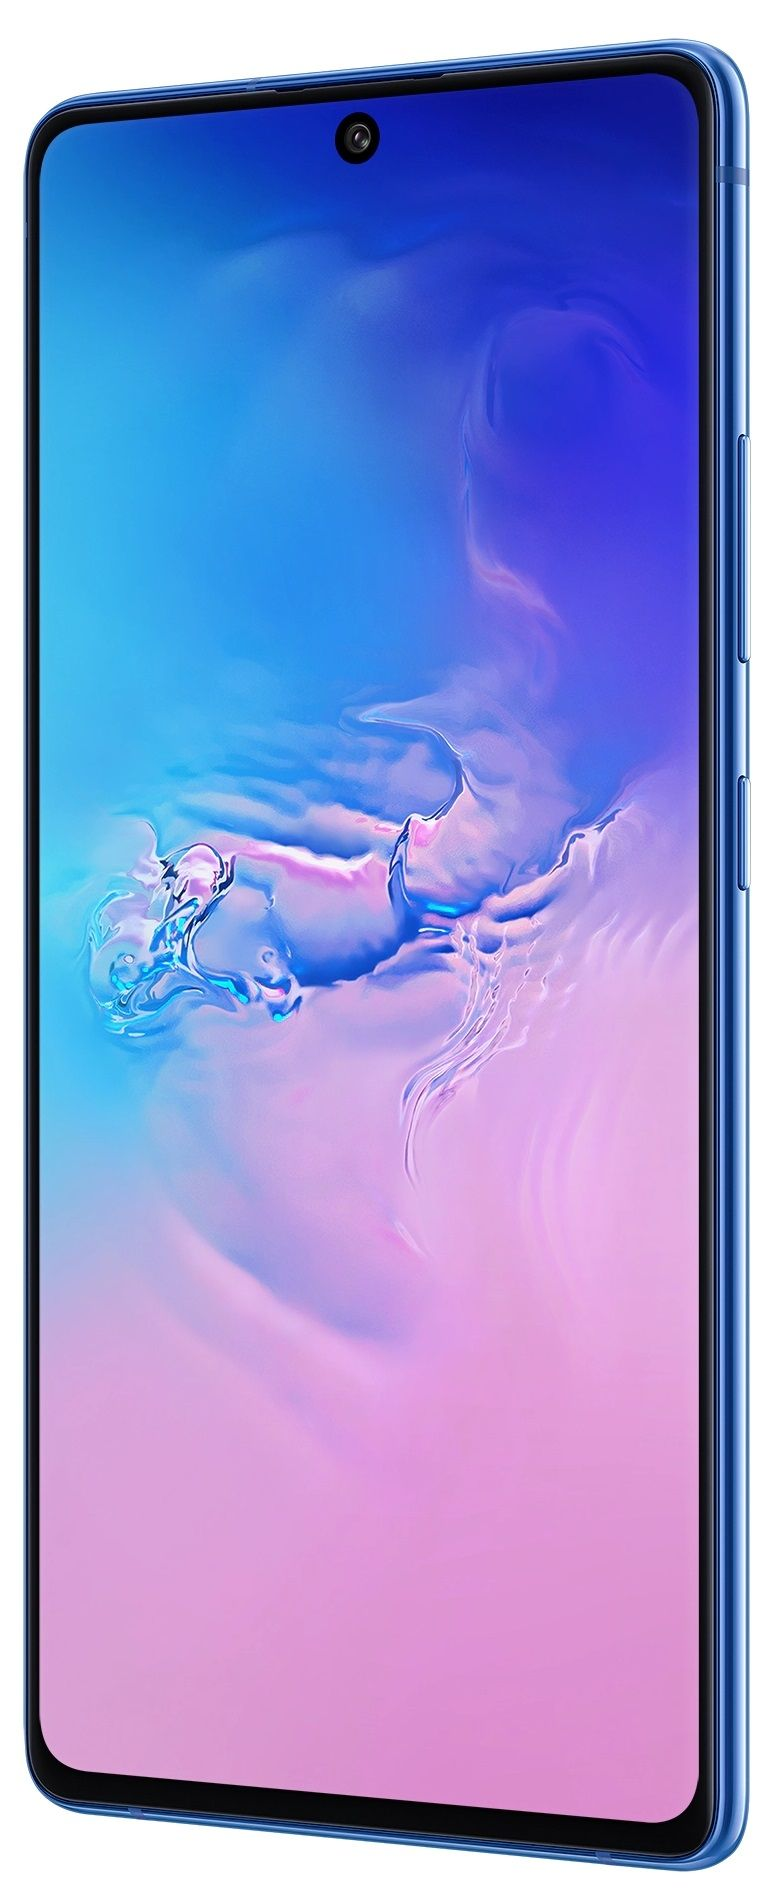 "Смартфон Samsung Galaxy S10 Lite - 6.7"", 128GB, син - 3"